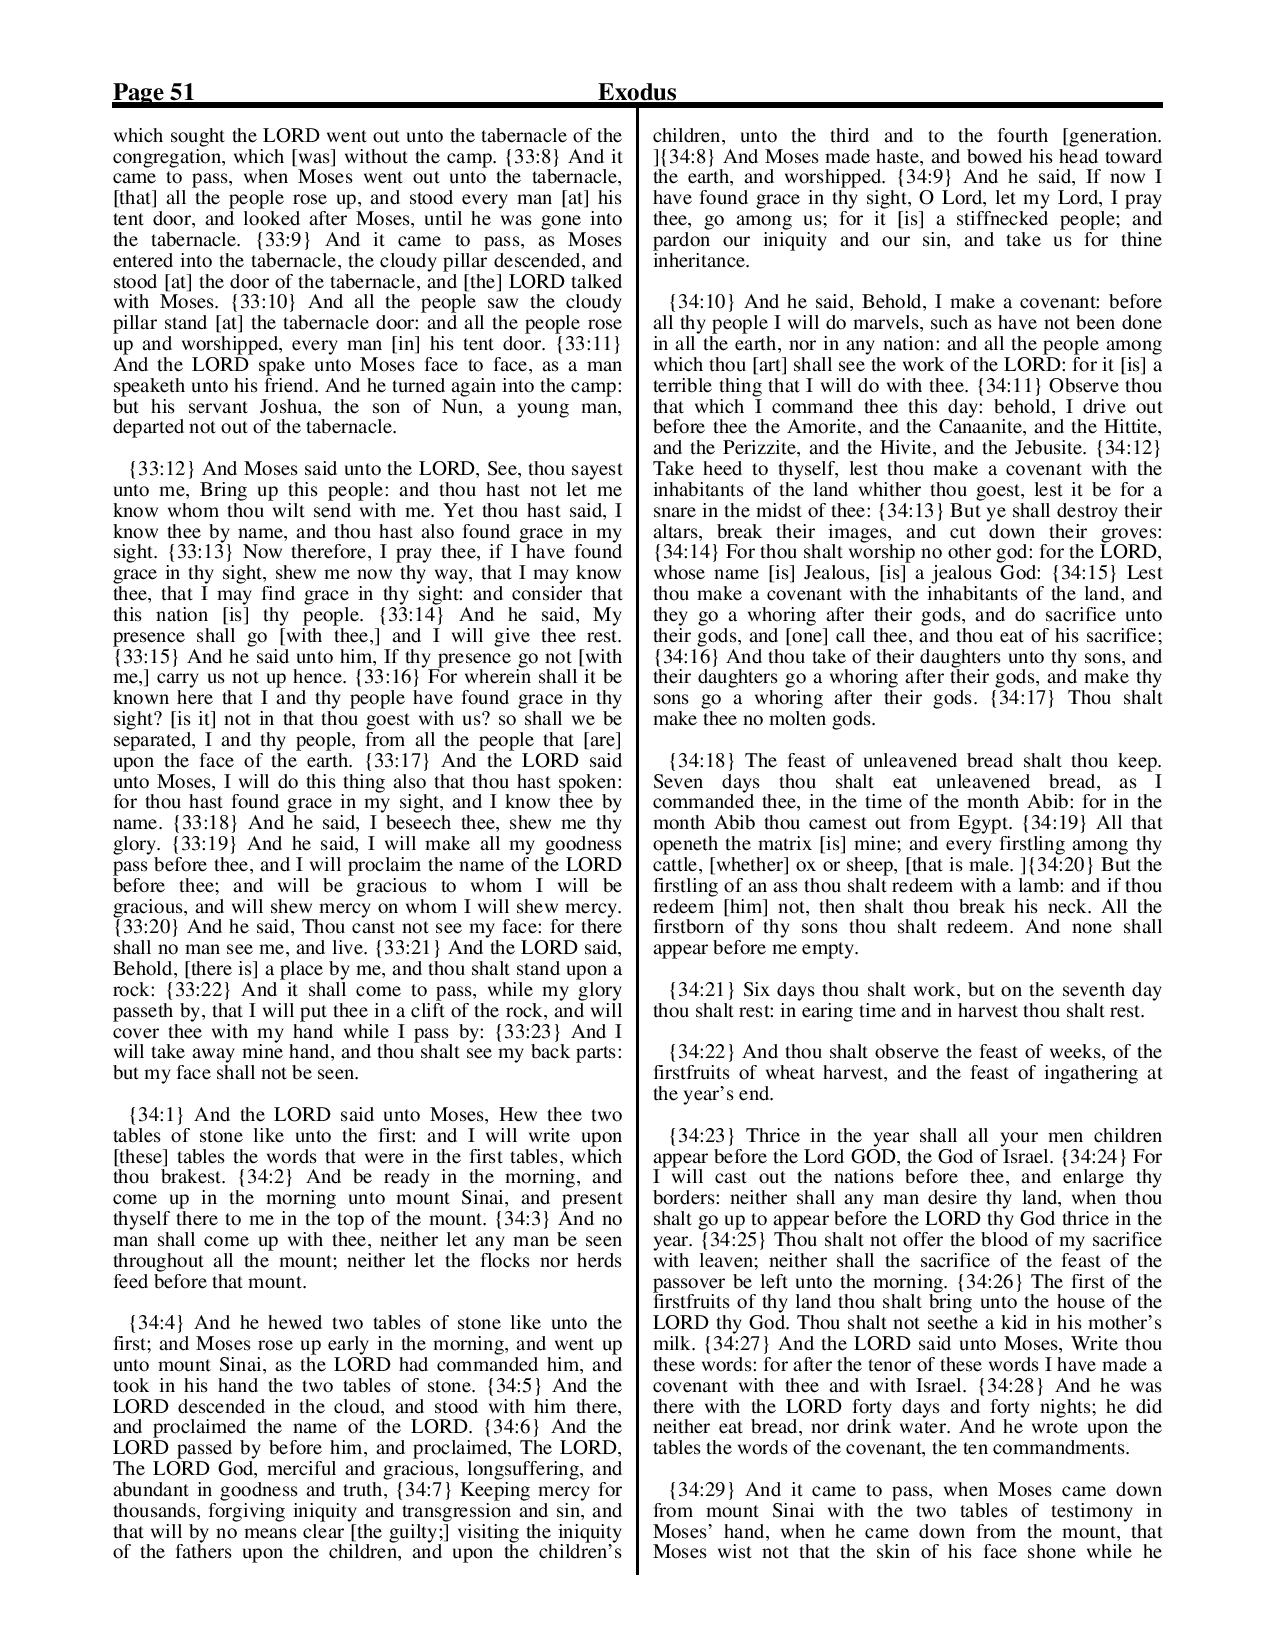 King-James-Bible-KJV-Bible-PDF-page-072